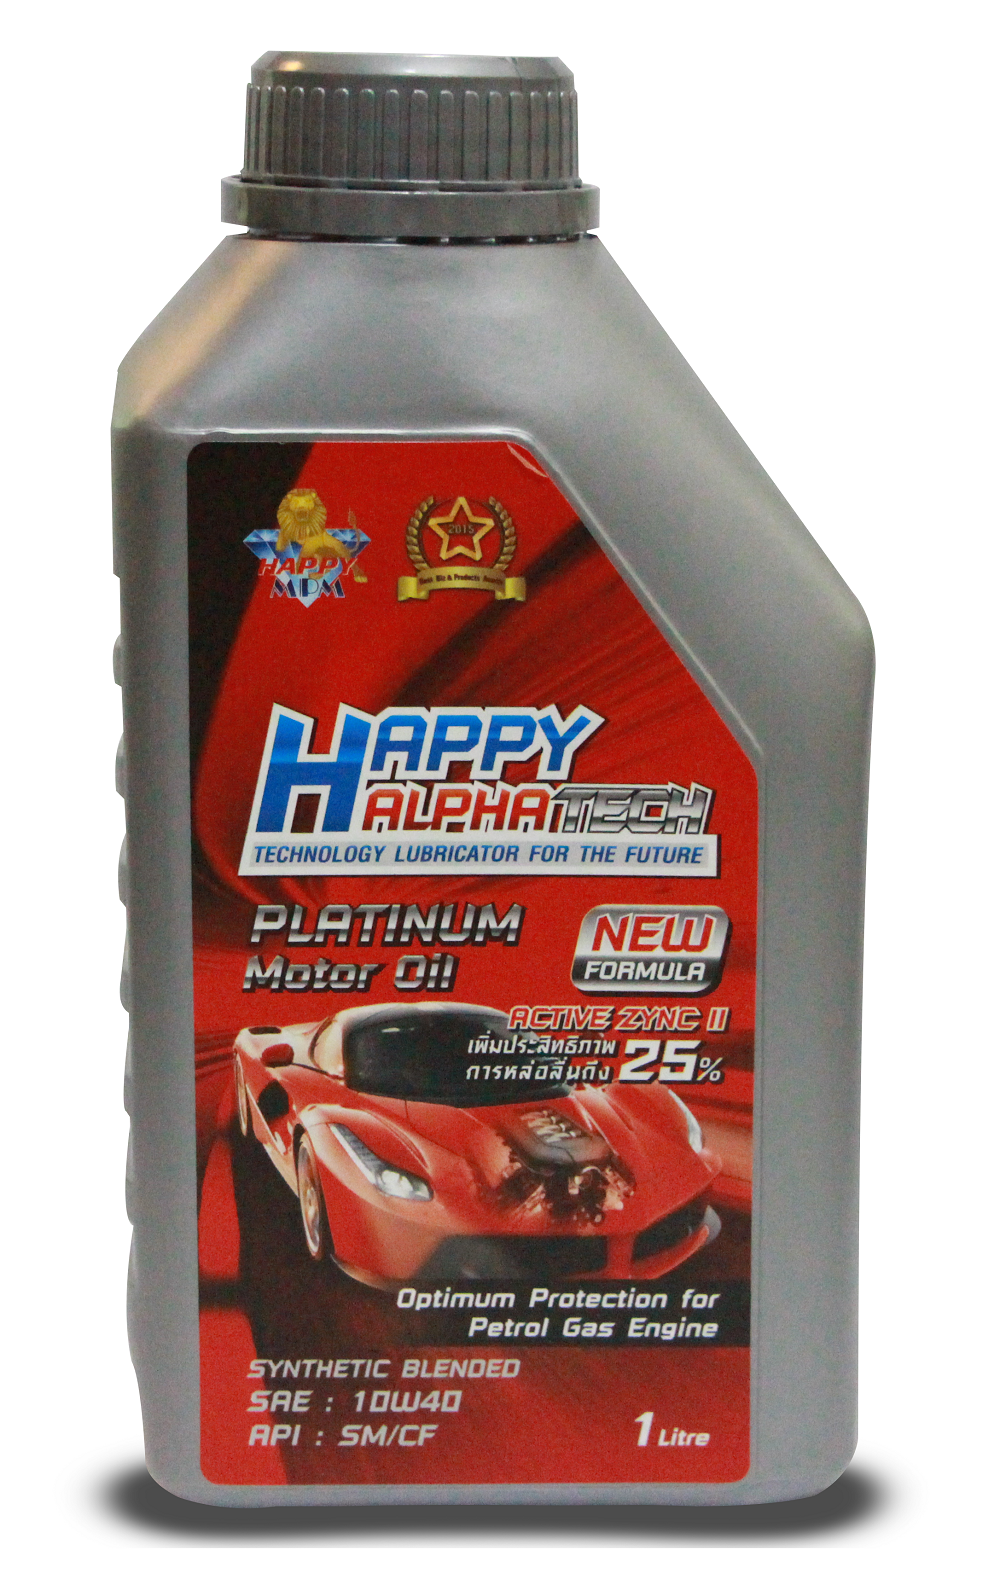 HAPPY ALPHA TECH PLATINUM Motor Oil